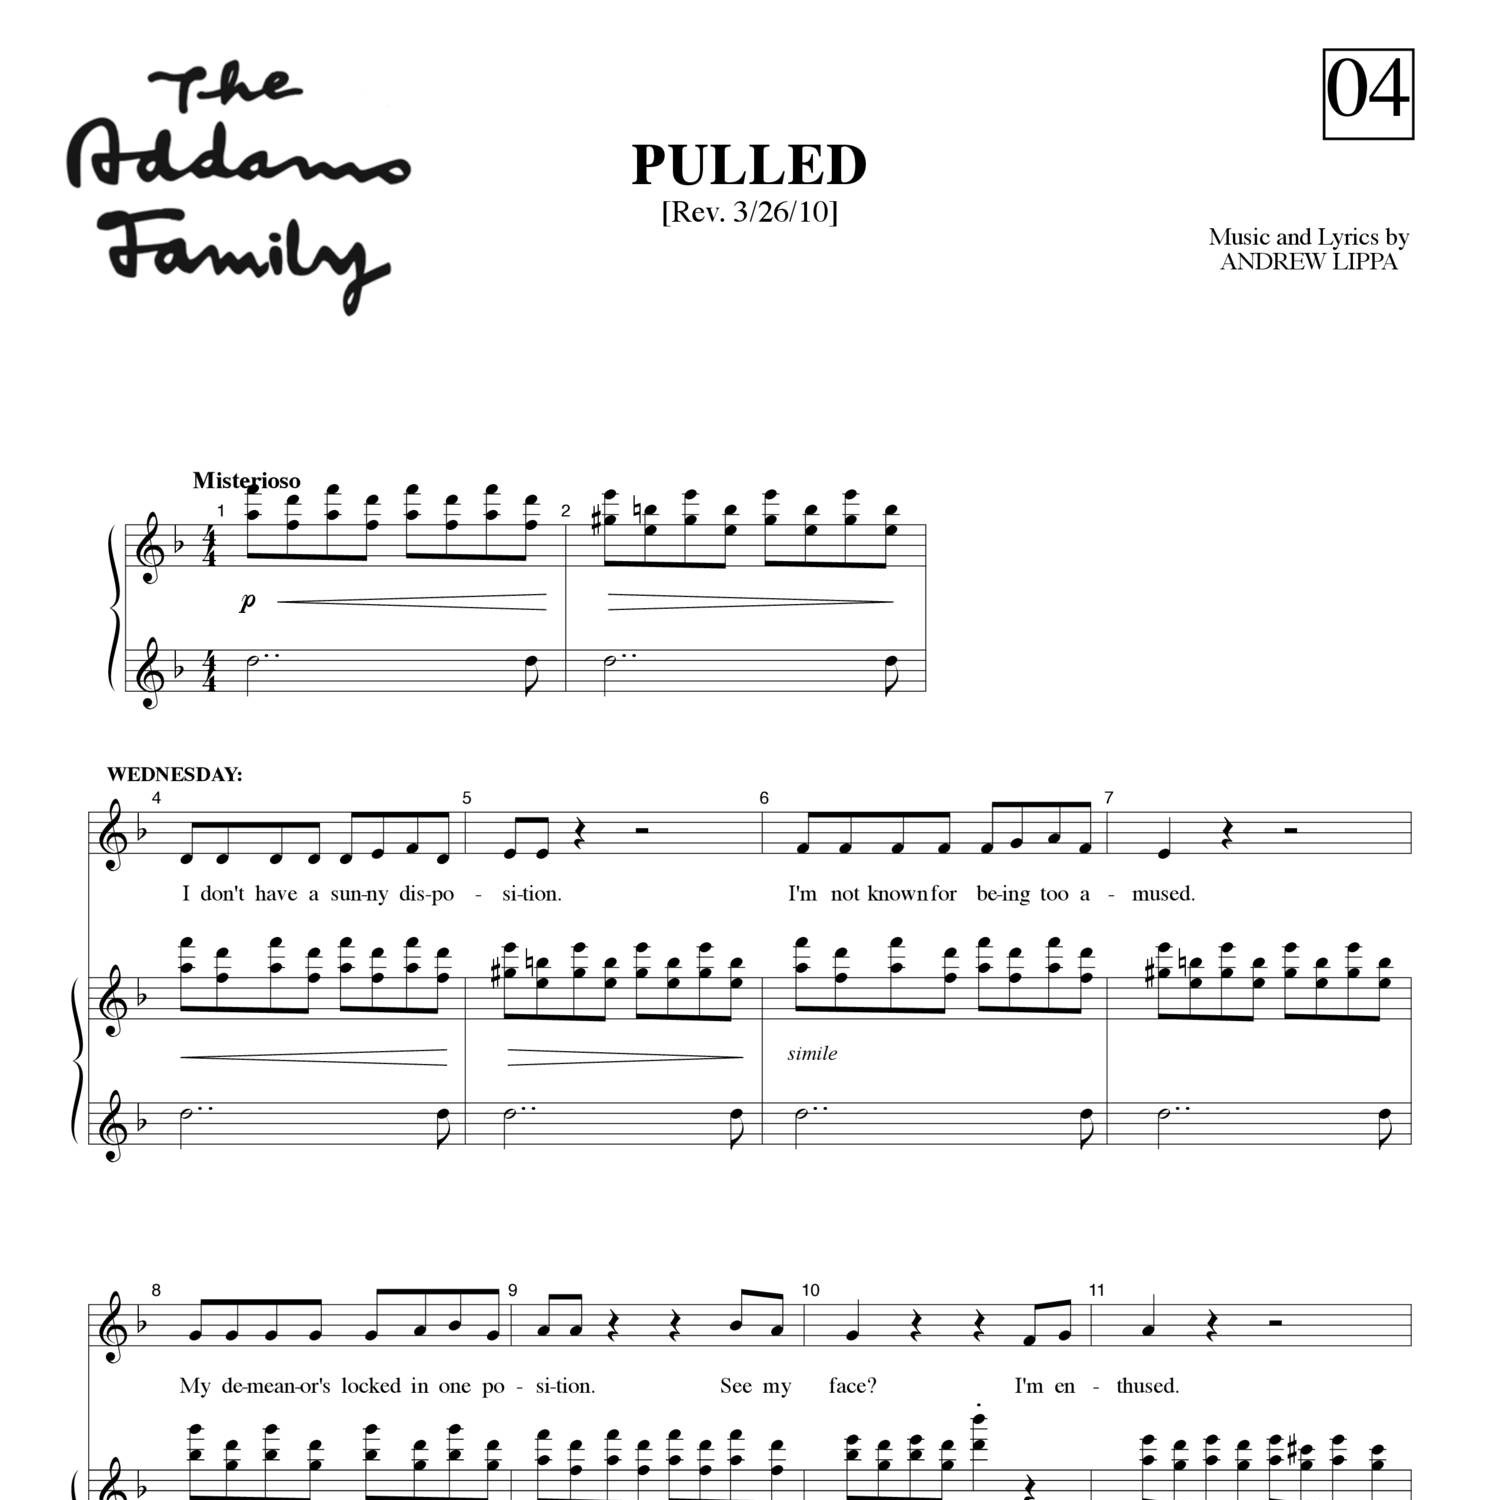 The Addams Family - Pulled.pdf - DocDroid